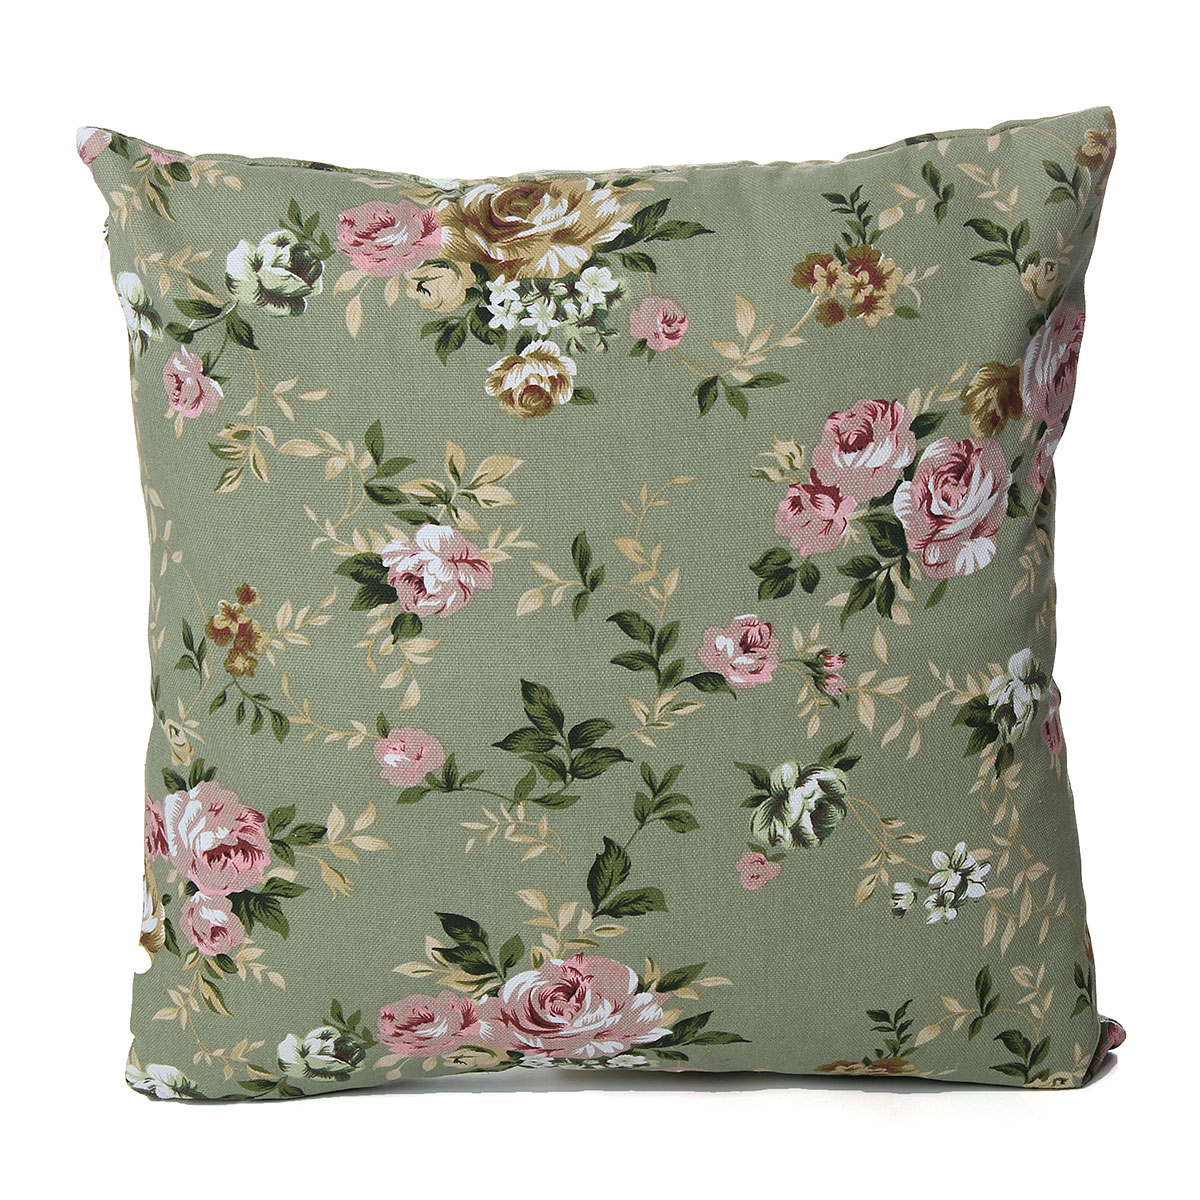 leinwand blumen rosen dekokissen kissenbezug kissenh lle kopfkissenbezug sofa uk ebay. Black Bedroom Furniture Sets. Home Design Ideas